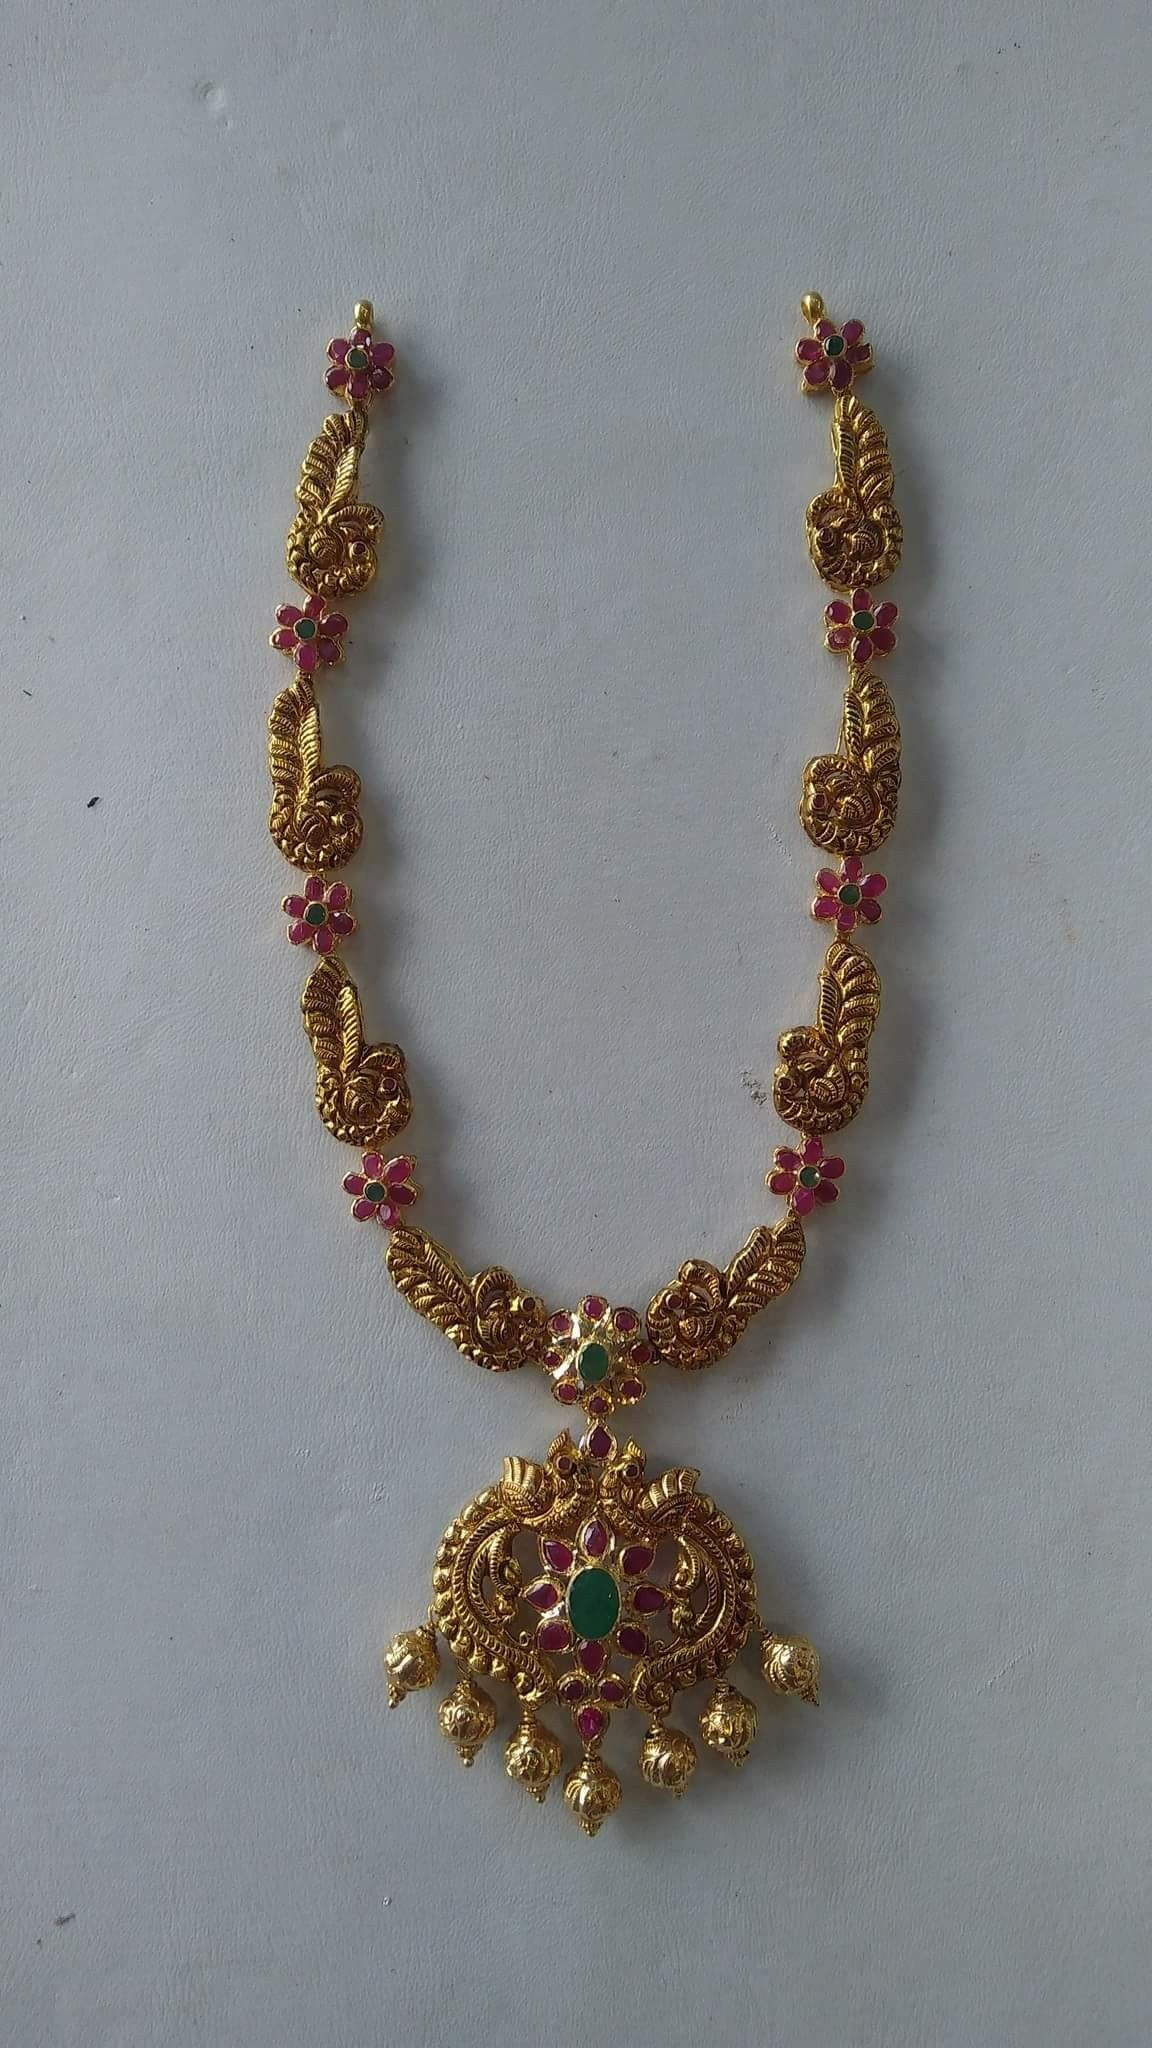 Pin by sreelakshmi on Gold | Pinterest | Indian jewelry, Jewel and ...